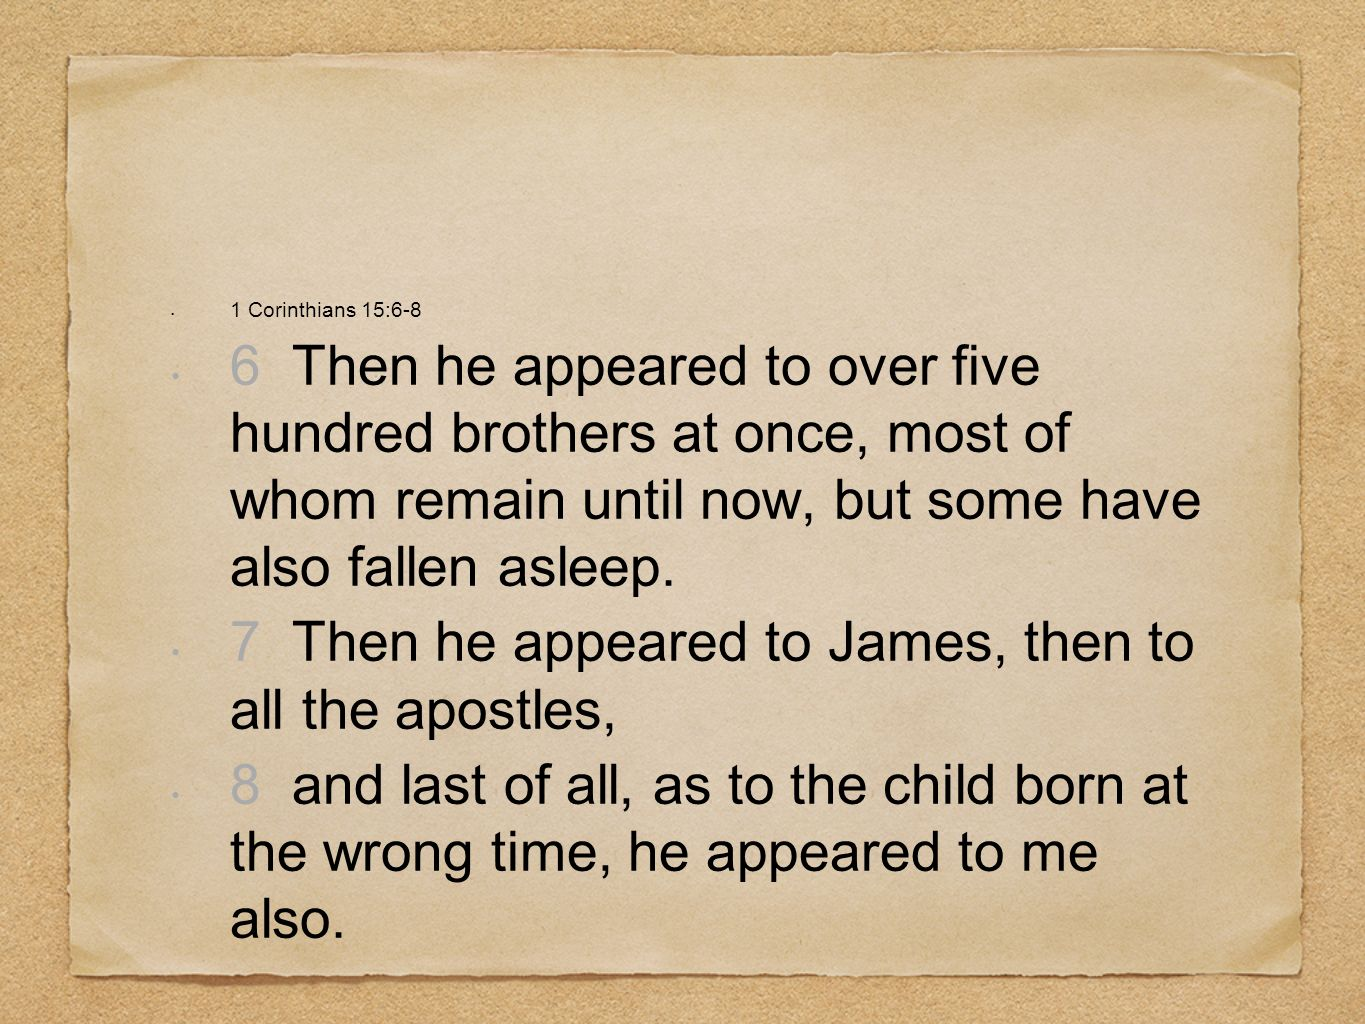 7 Then he appeared to James, then to all the apostles,